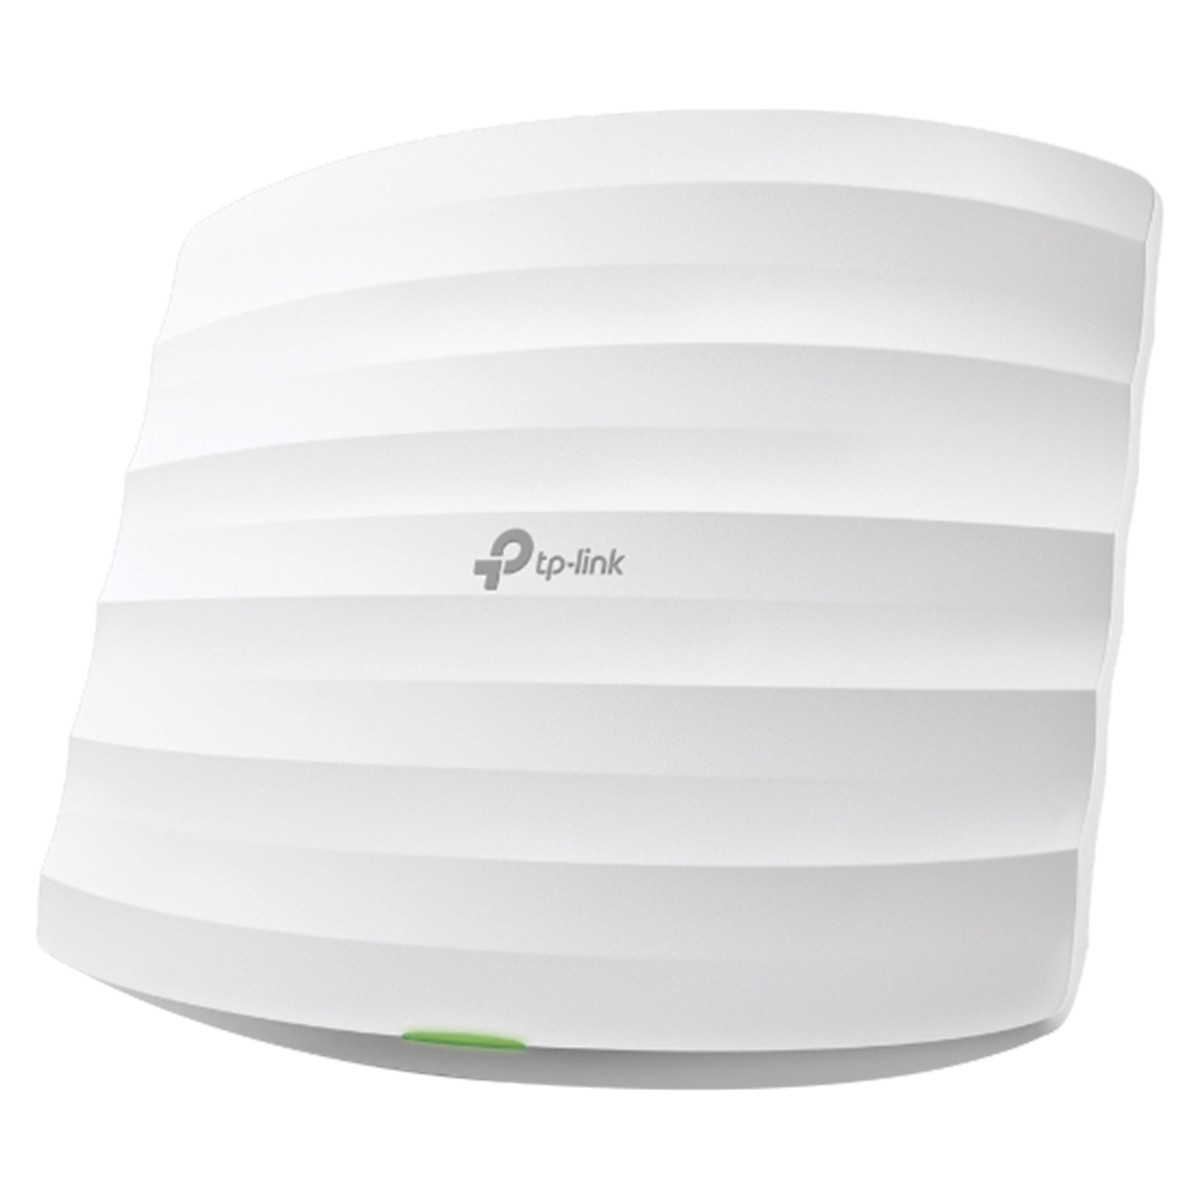 Access Point Wireless N 300MBPS Montavel em Teto EAP115